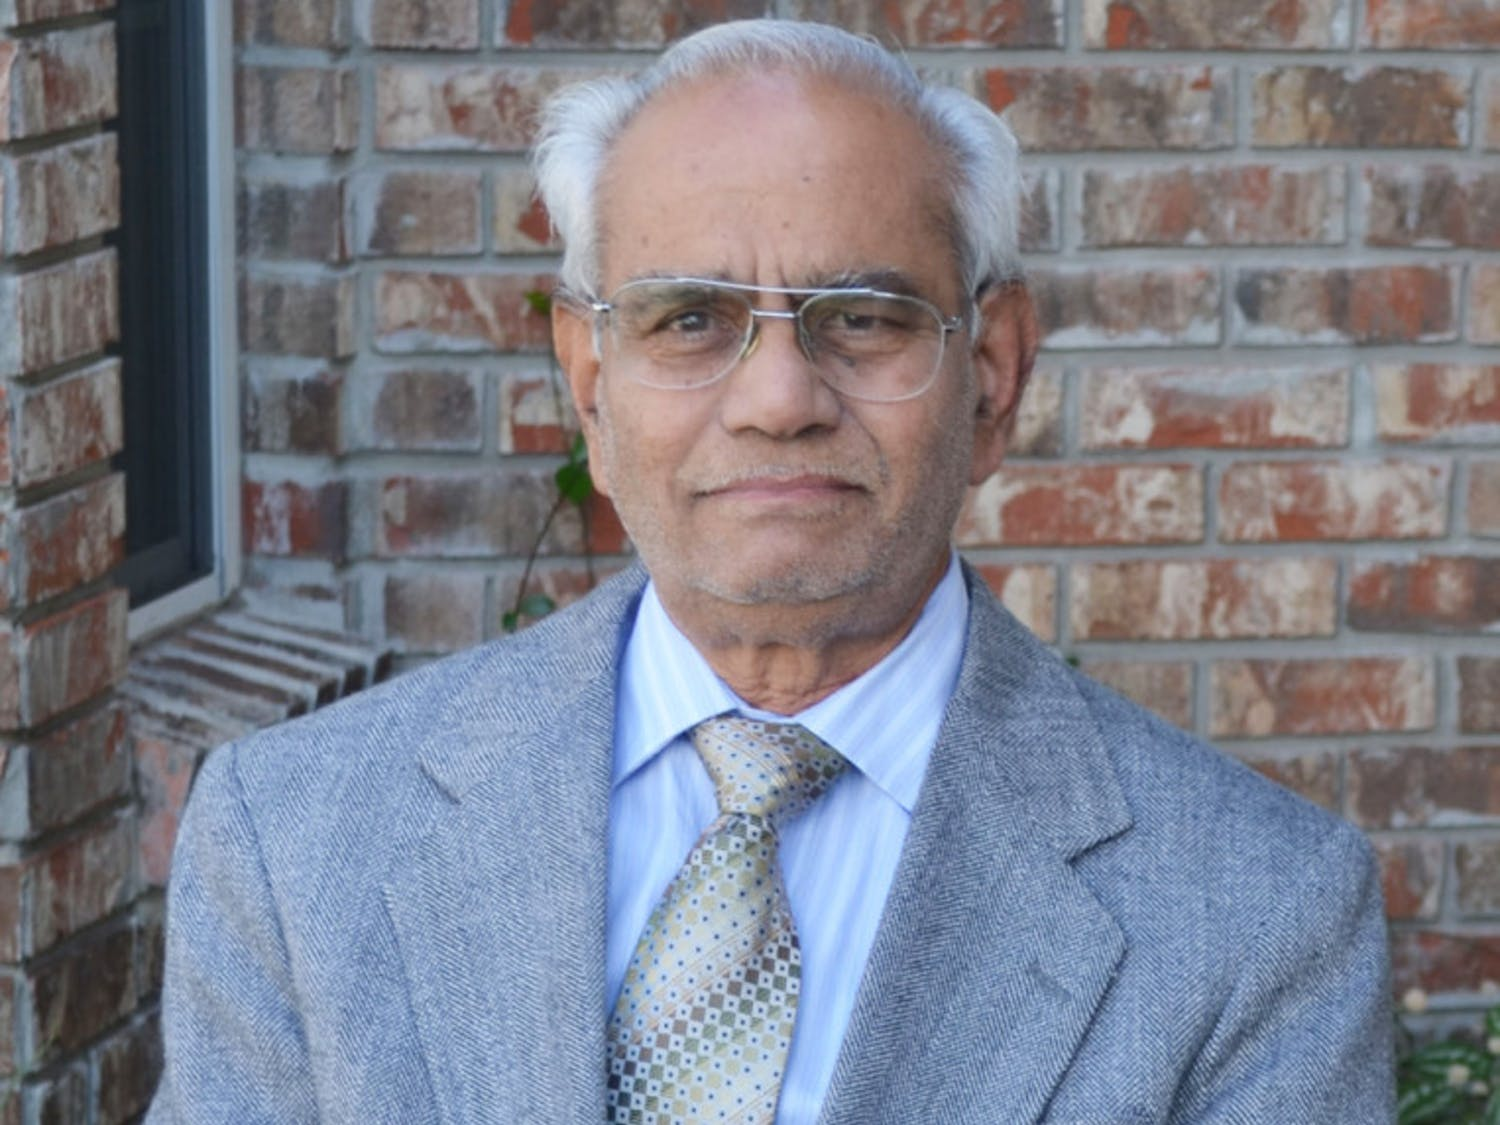 K. Siva Prasad is a 76-year-old retired engineer. He said he hopes to break the political gridlock in the County Commission by running as a non-party affiliated candidate.